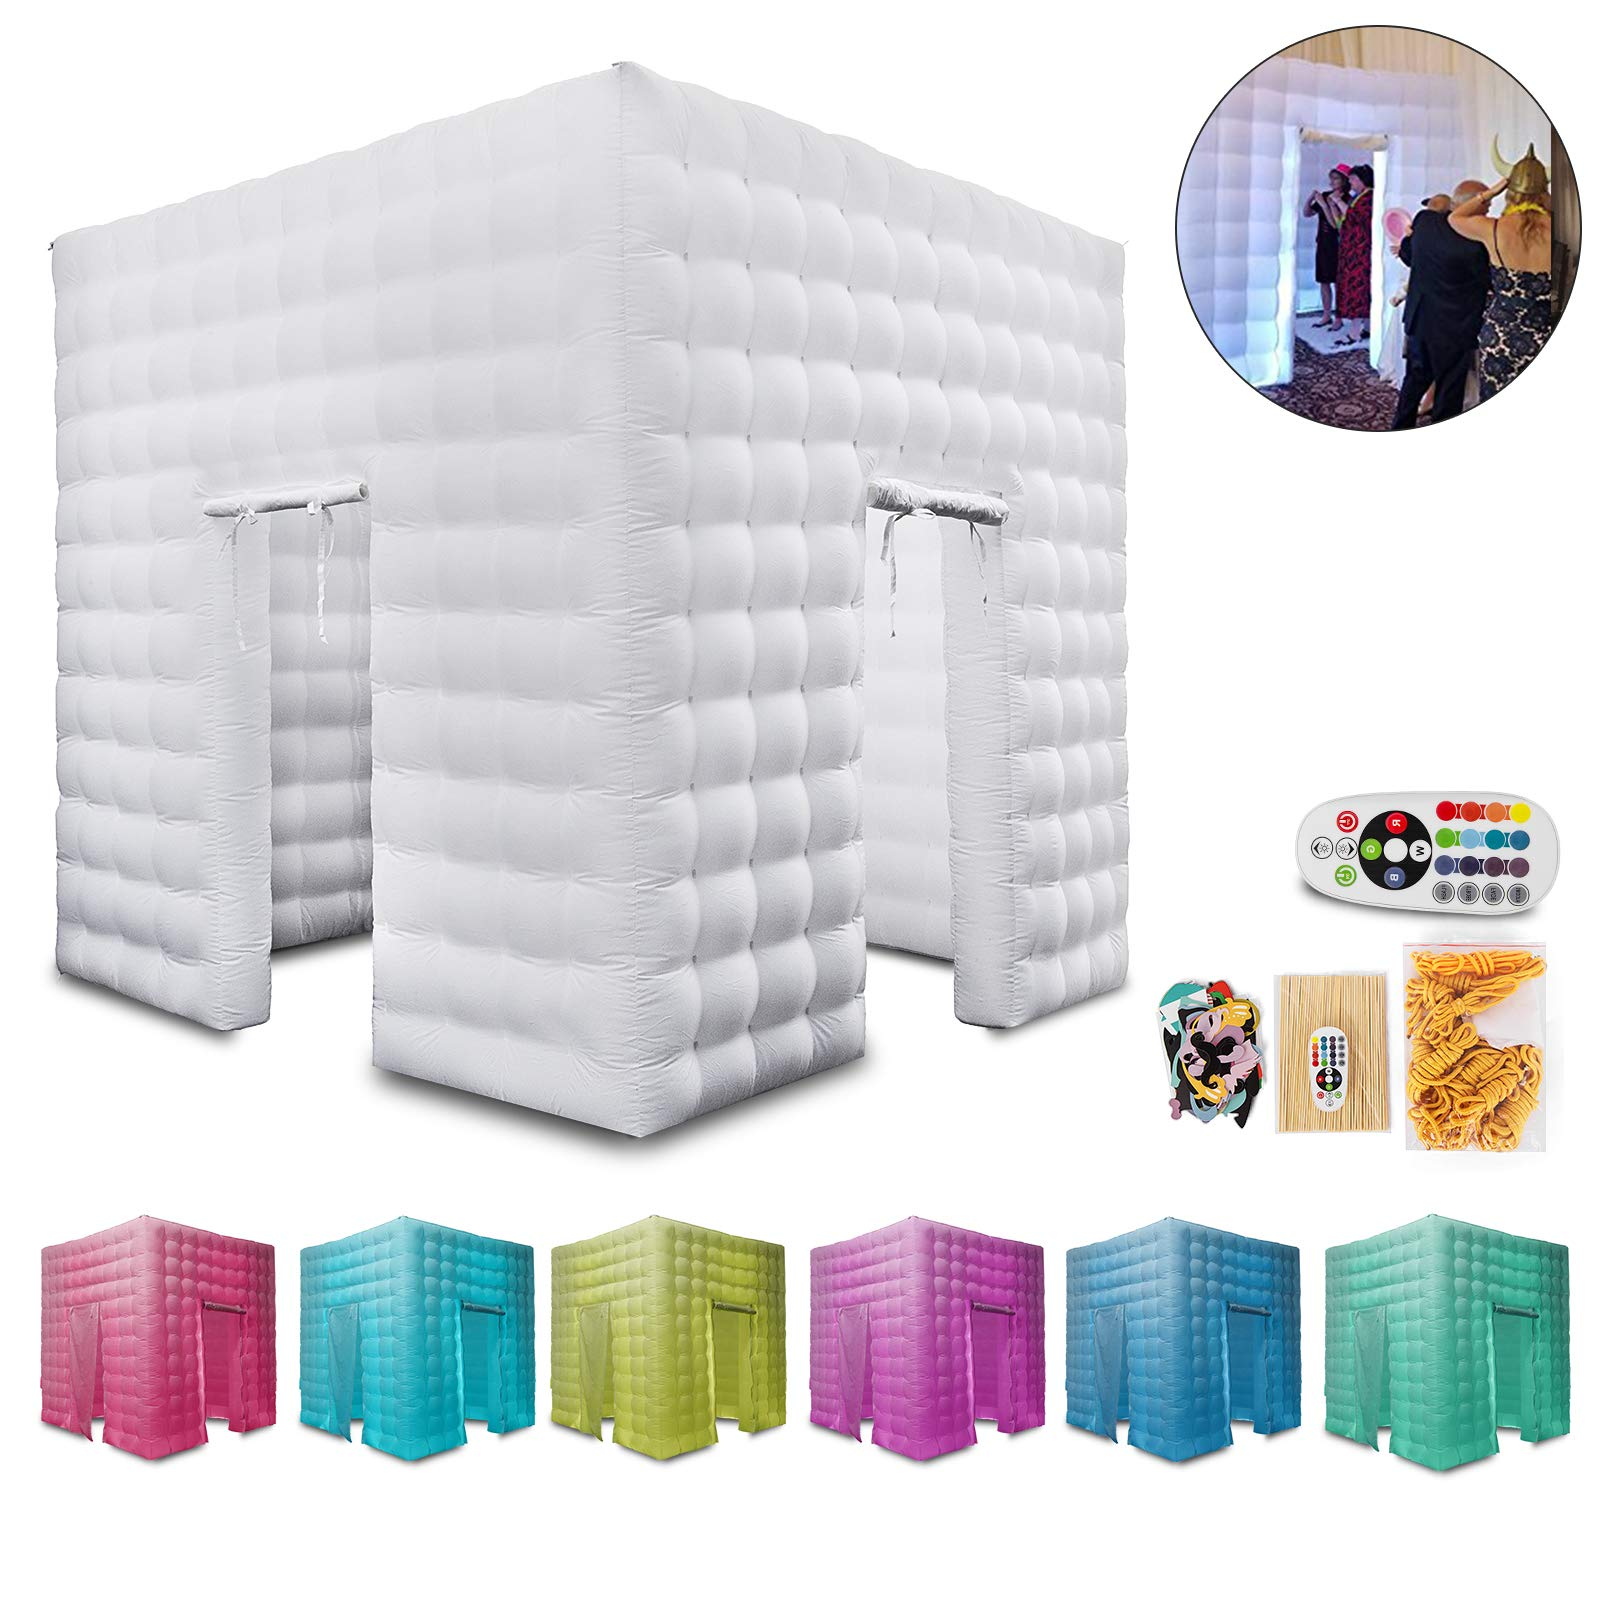 Happybuy 2 Doors Inflatable Photo Booth 8.2X 8.2ft Photo Booth Enclosure Portable LED Lights Photo Booth W/Fan Great for Parties Weddings Anniversary Birthdays Company Parties Special Events by Happybuy